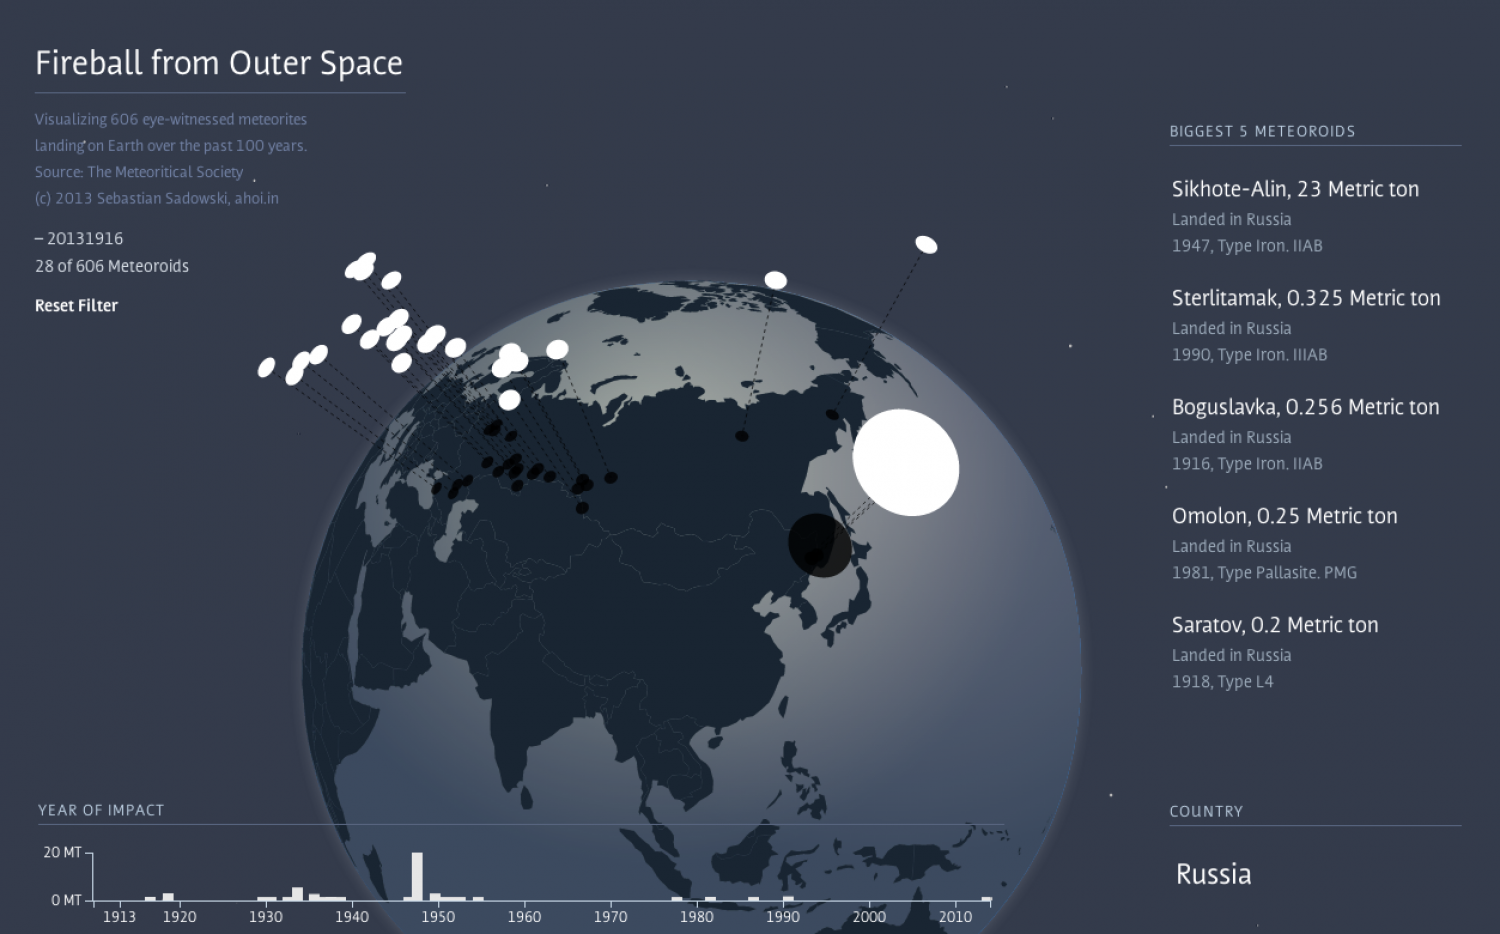 Fireball from Outer Space Infographic